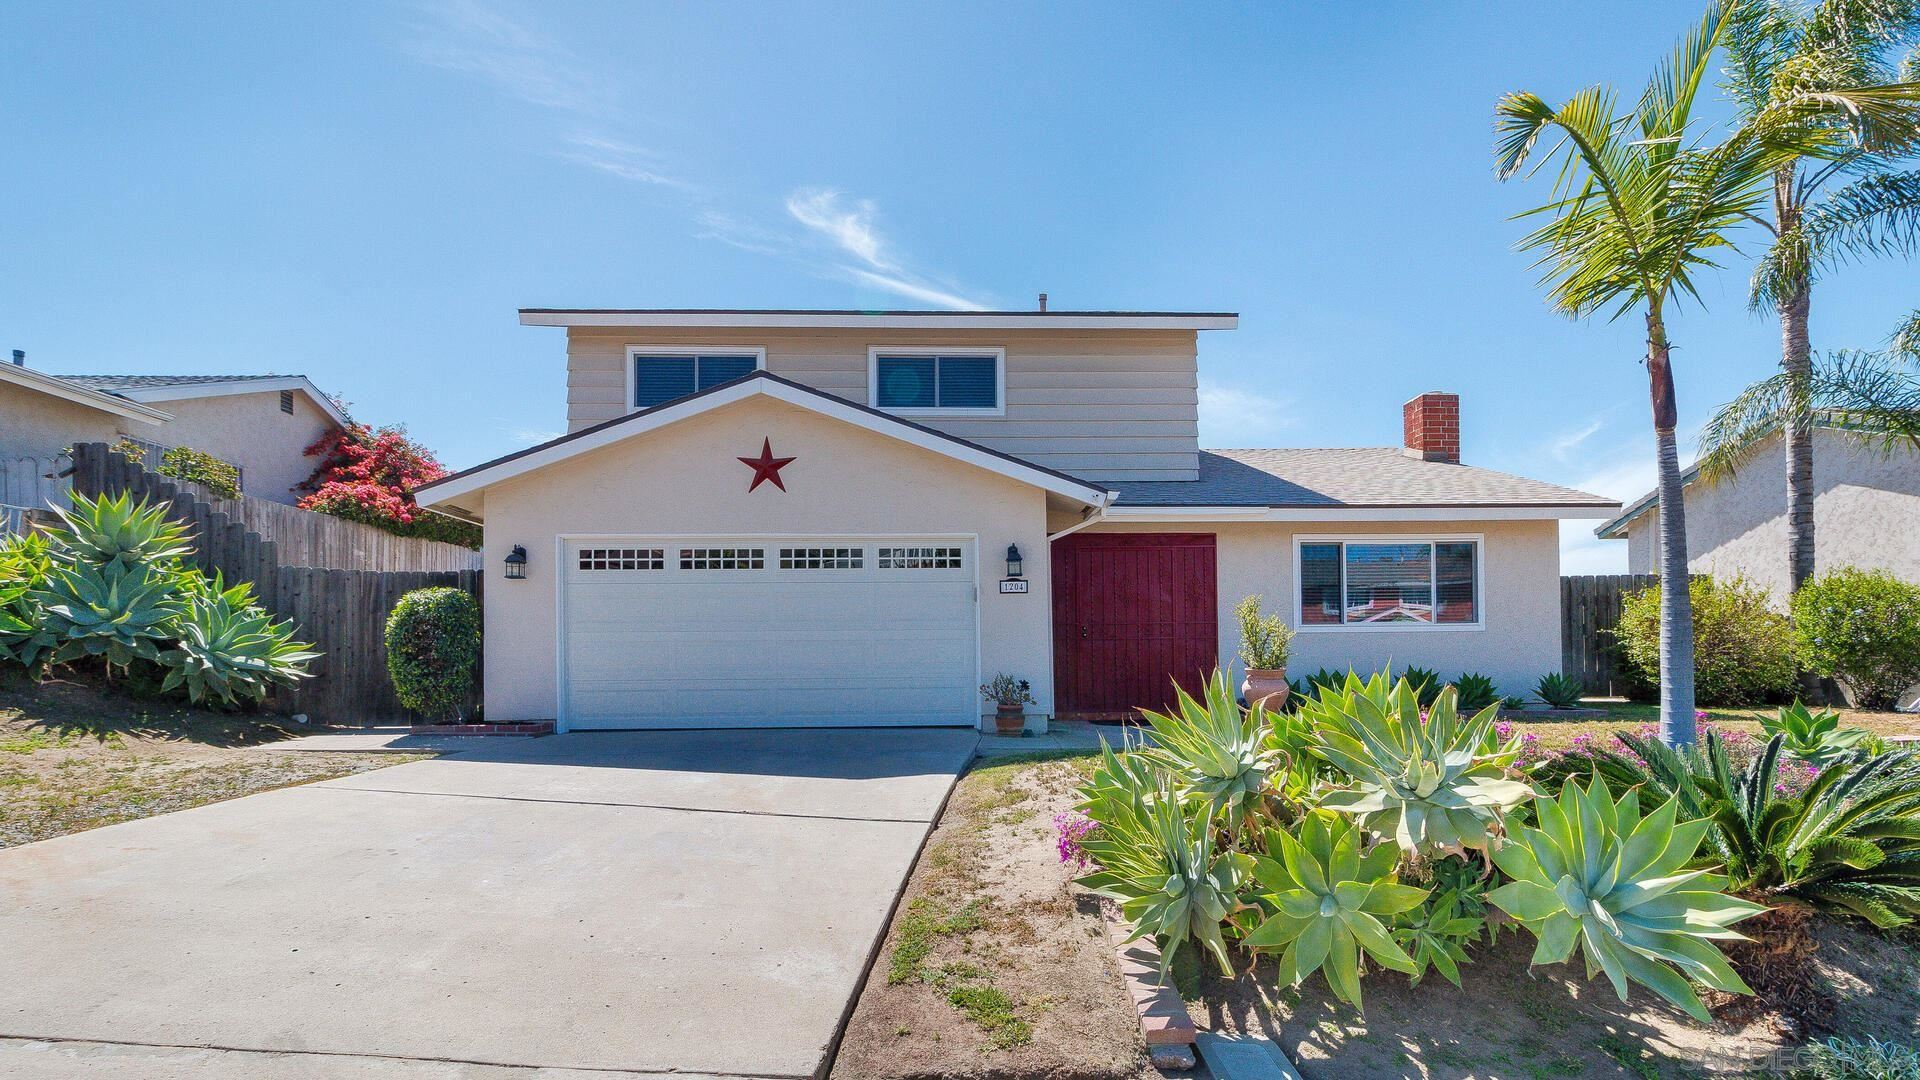 Photo of 1204 Mission Ave., Chula Vista, CA 91911 (MLS # 210009230)